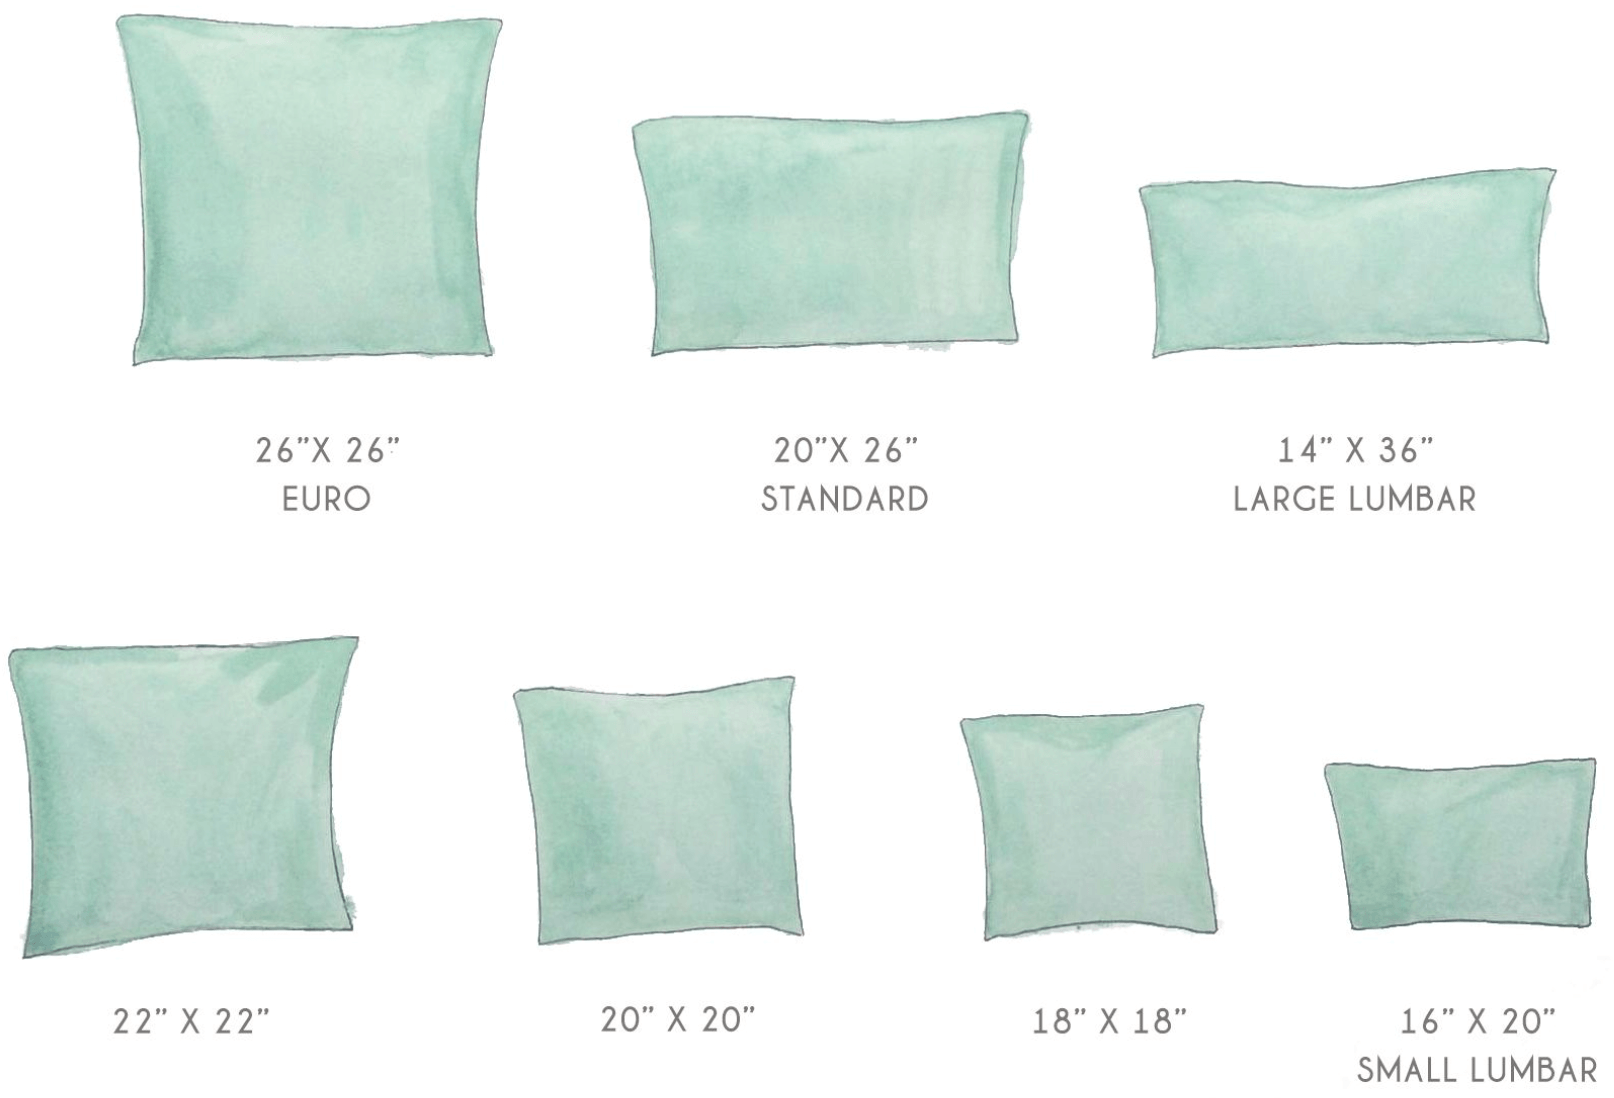 Standard Pillow And Pillowcase Size Chart Guide Updated 2020